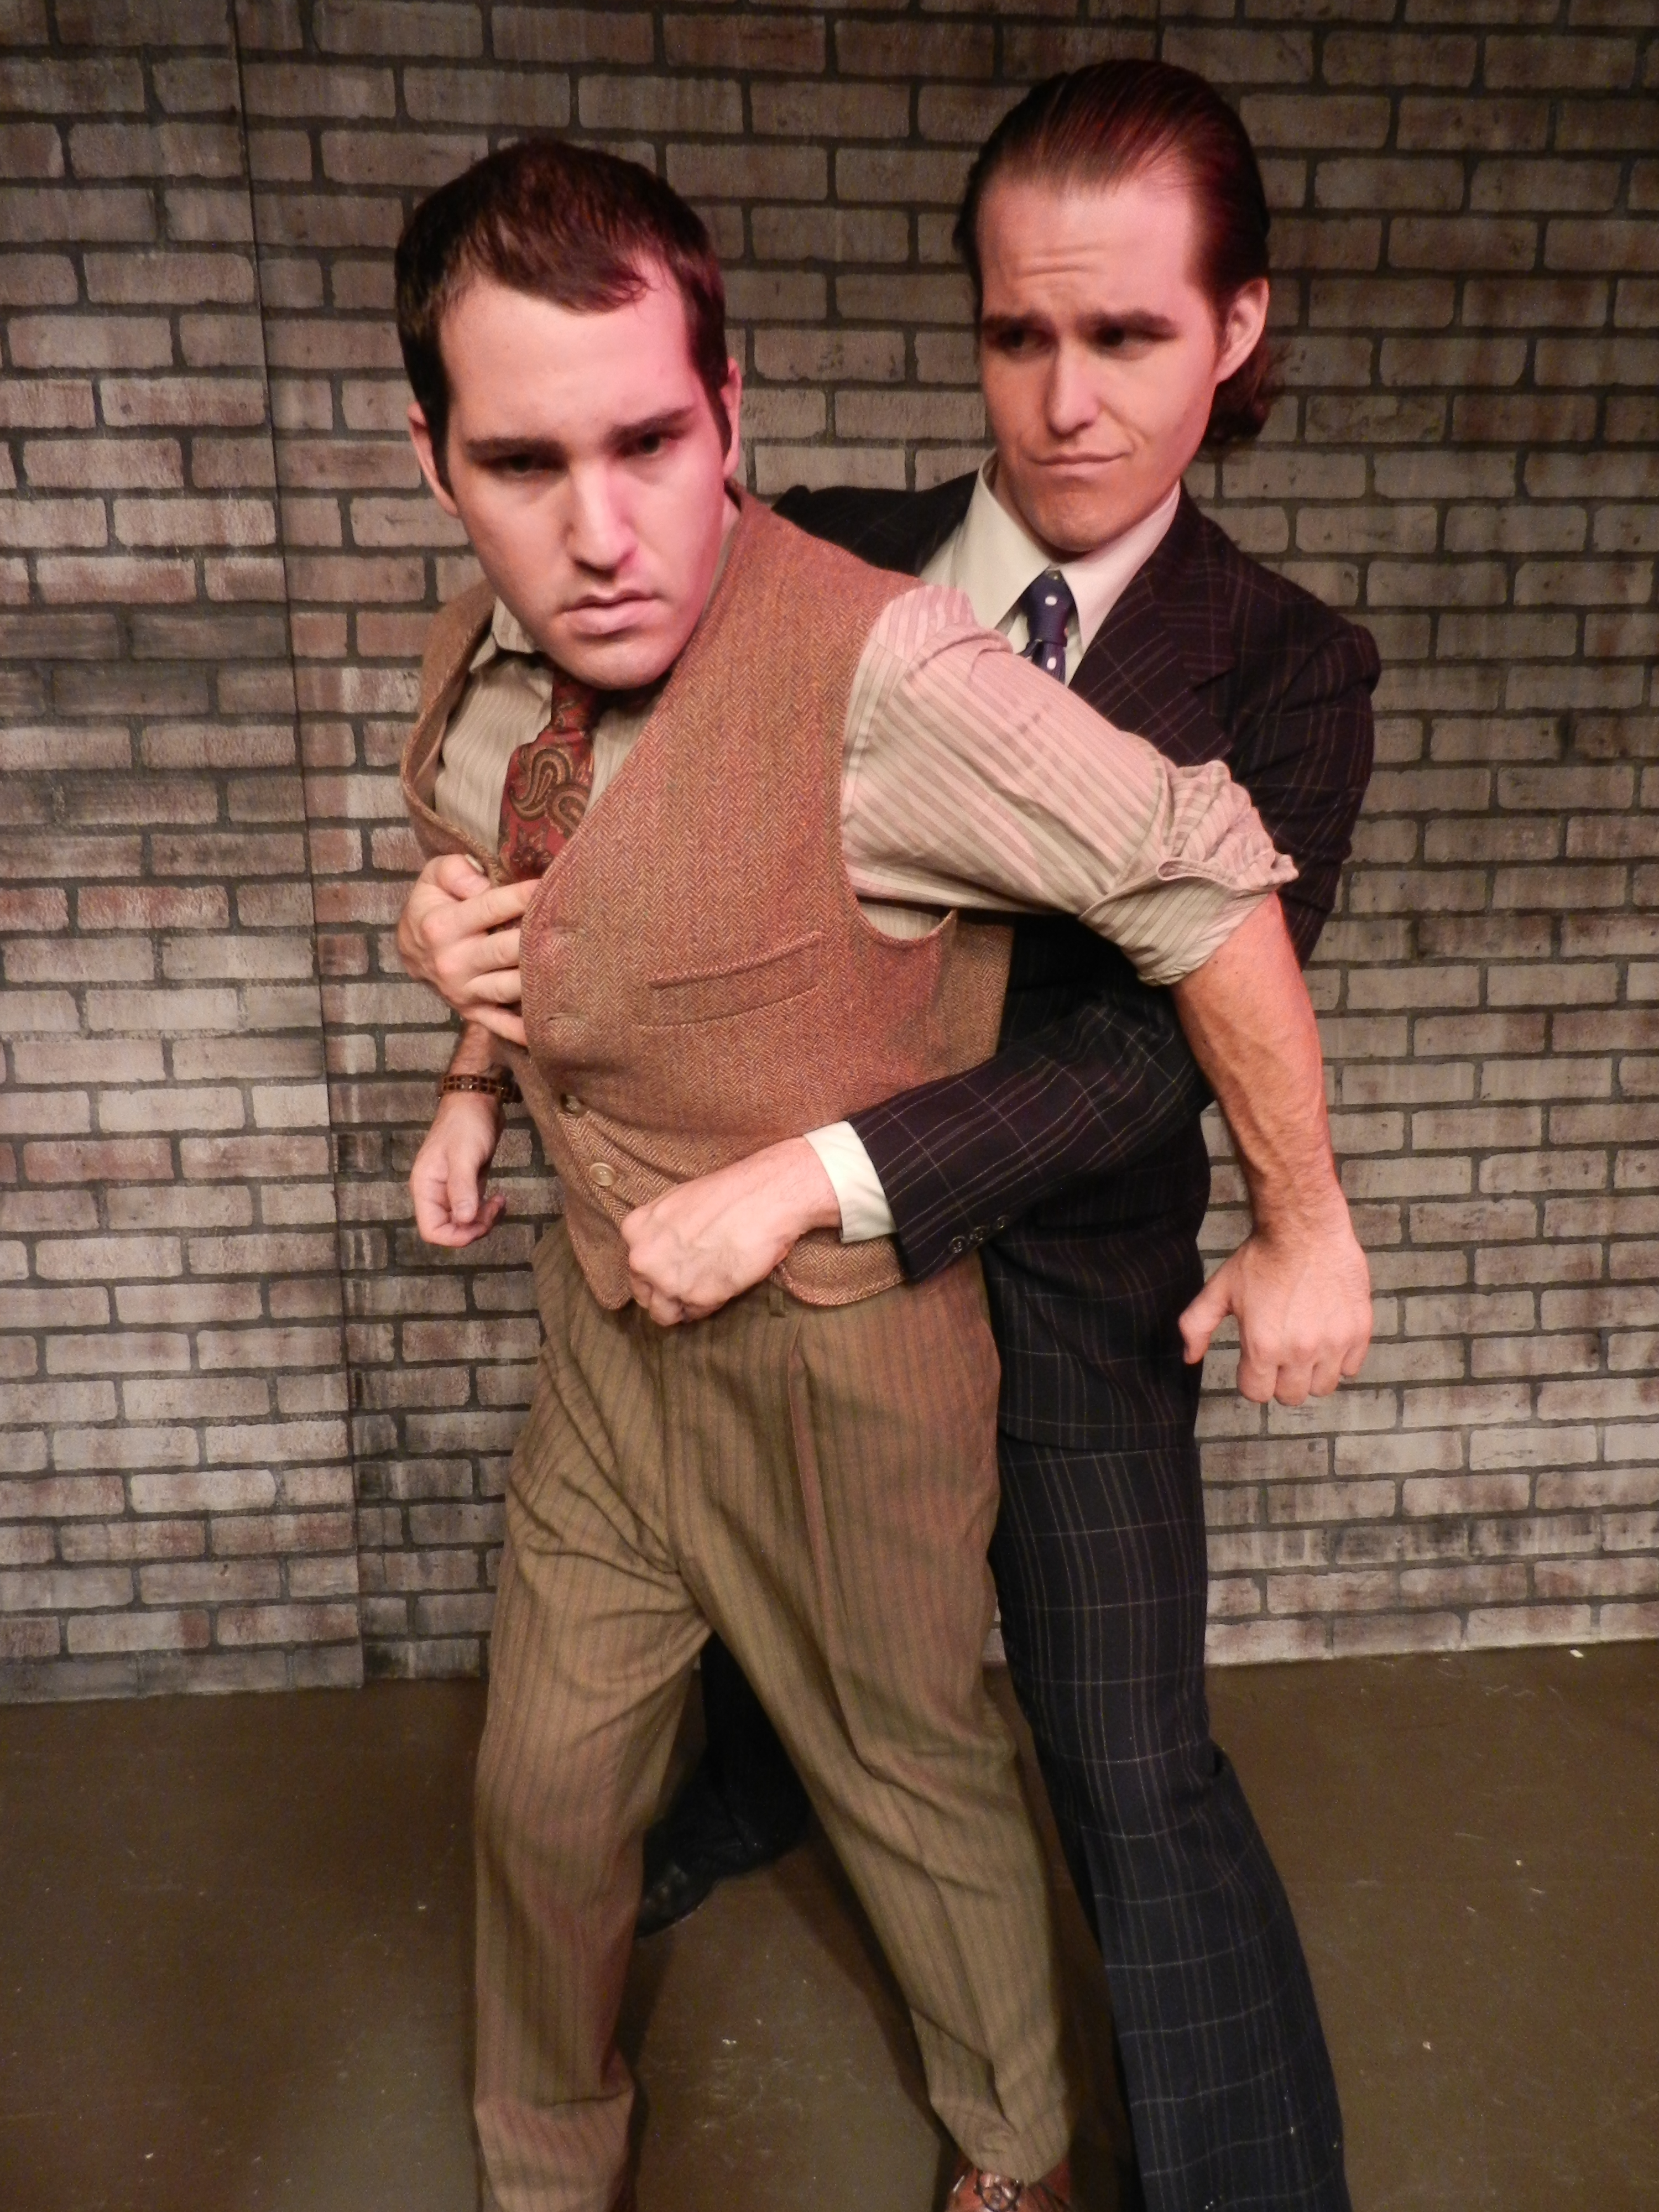 Michael Westrich and Clay Cartland, actors playing actors playing roles in The Twentieth Century Way